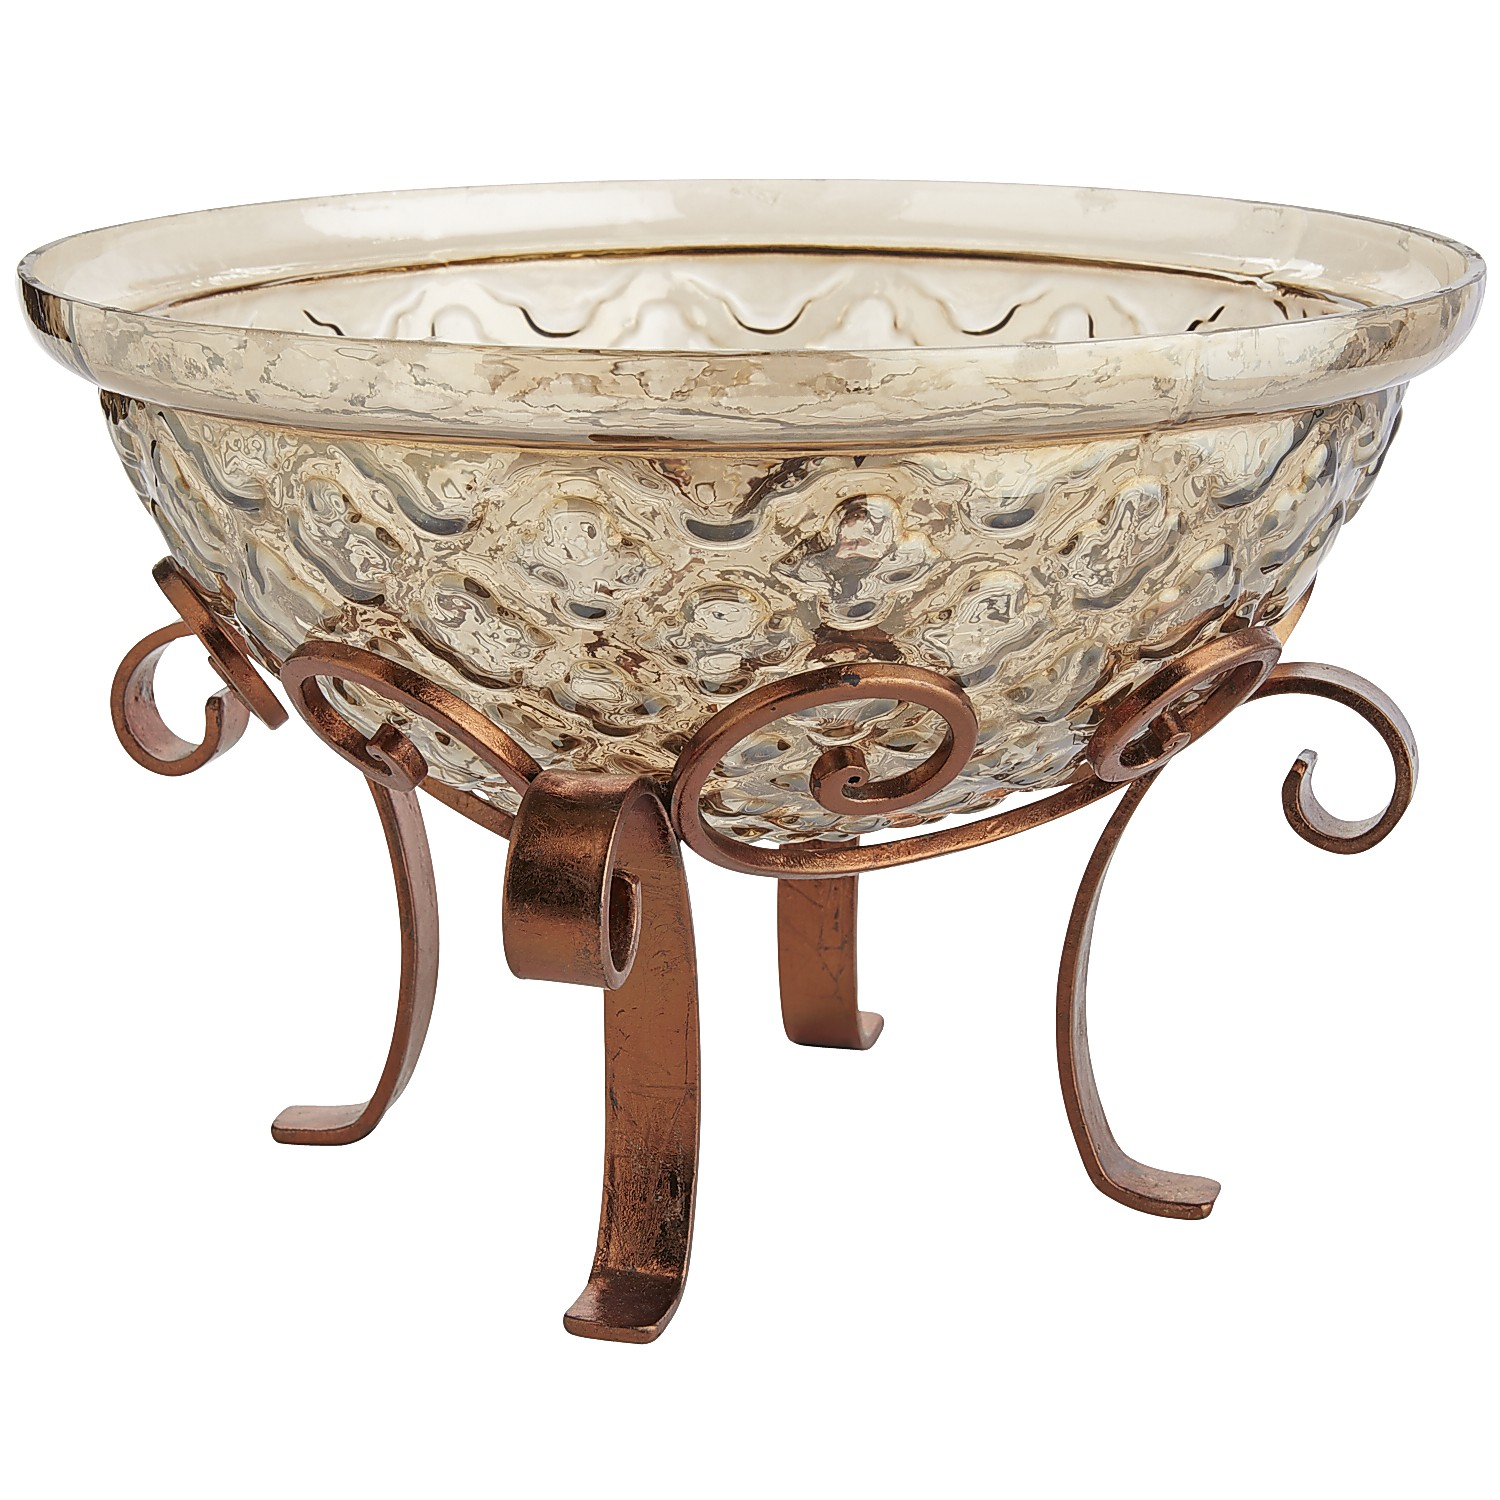 Golden Quatrefoil Decorative Bowl with Stand